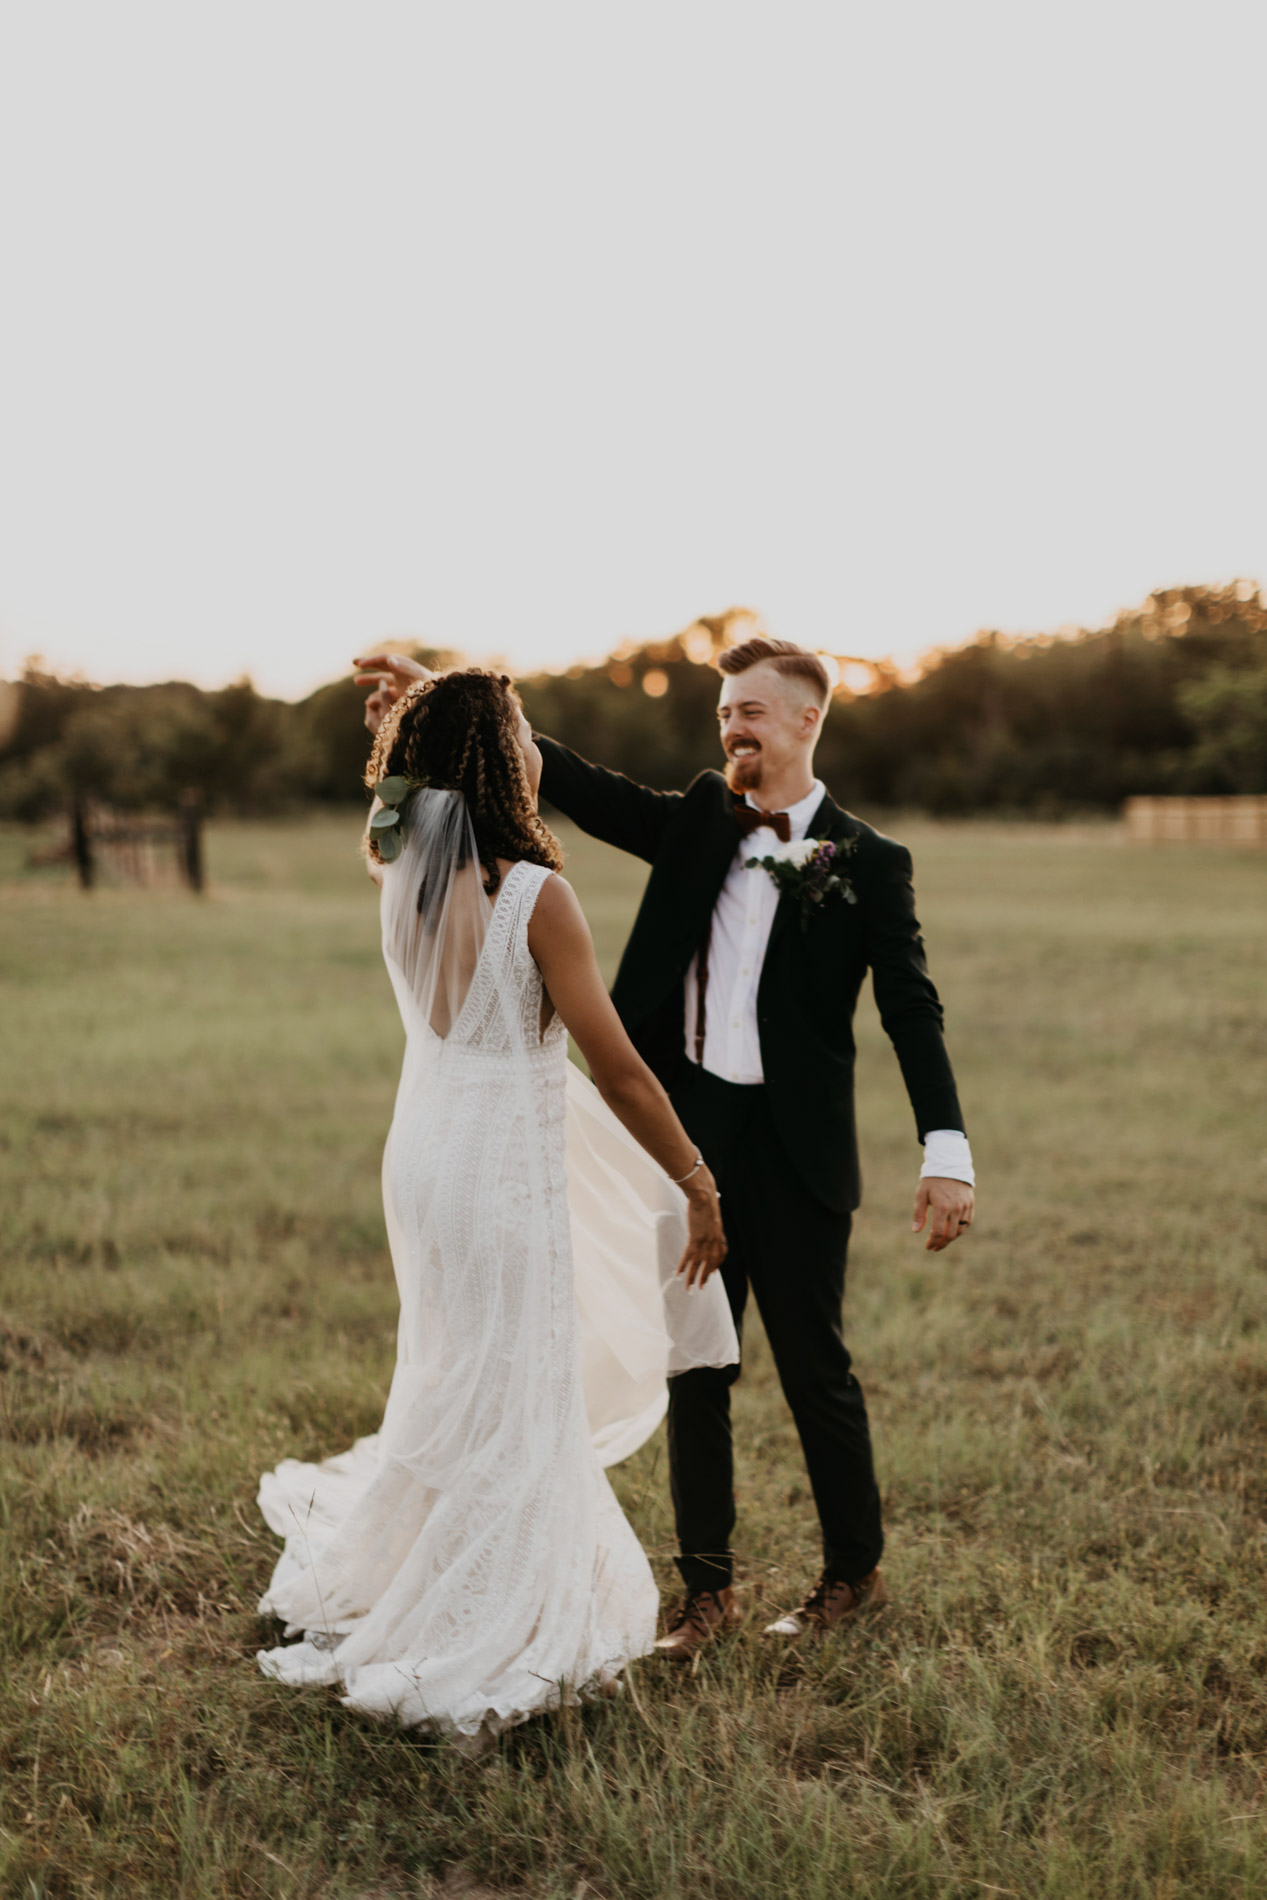 Bride and groom dancing after wedding ceremony in east texas